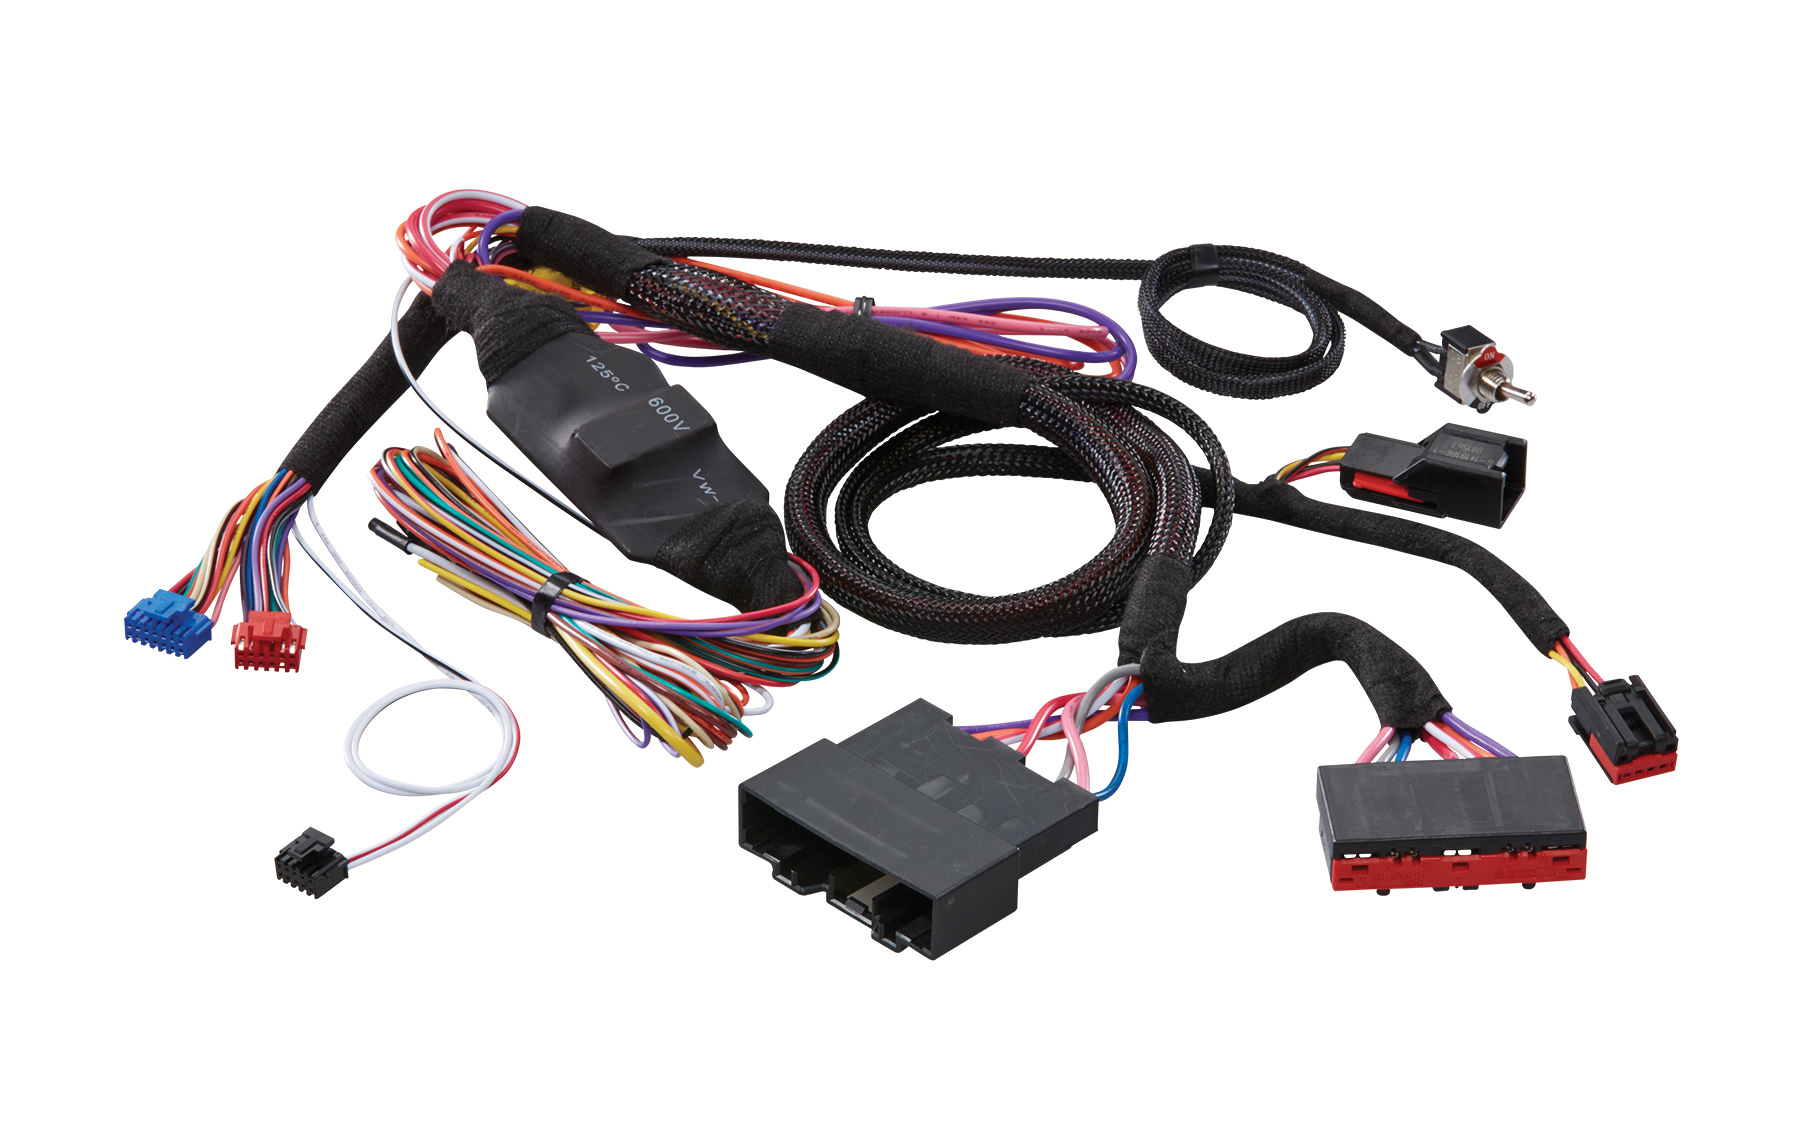 hight resolution of xpresskit thfd1 t harness solution for dball and dball2 for ford vehicles walmart com